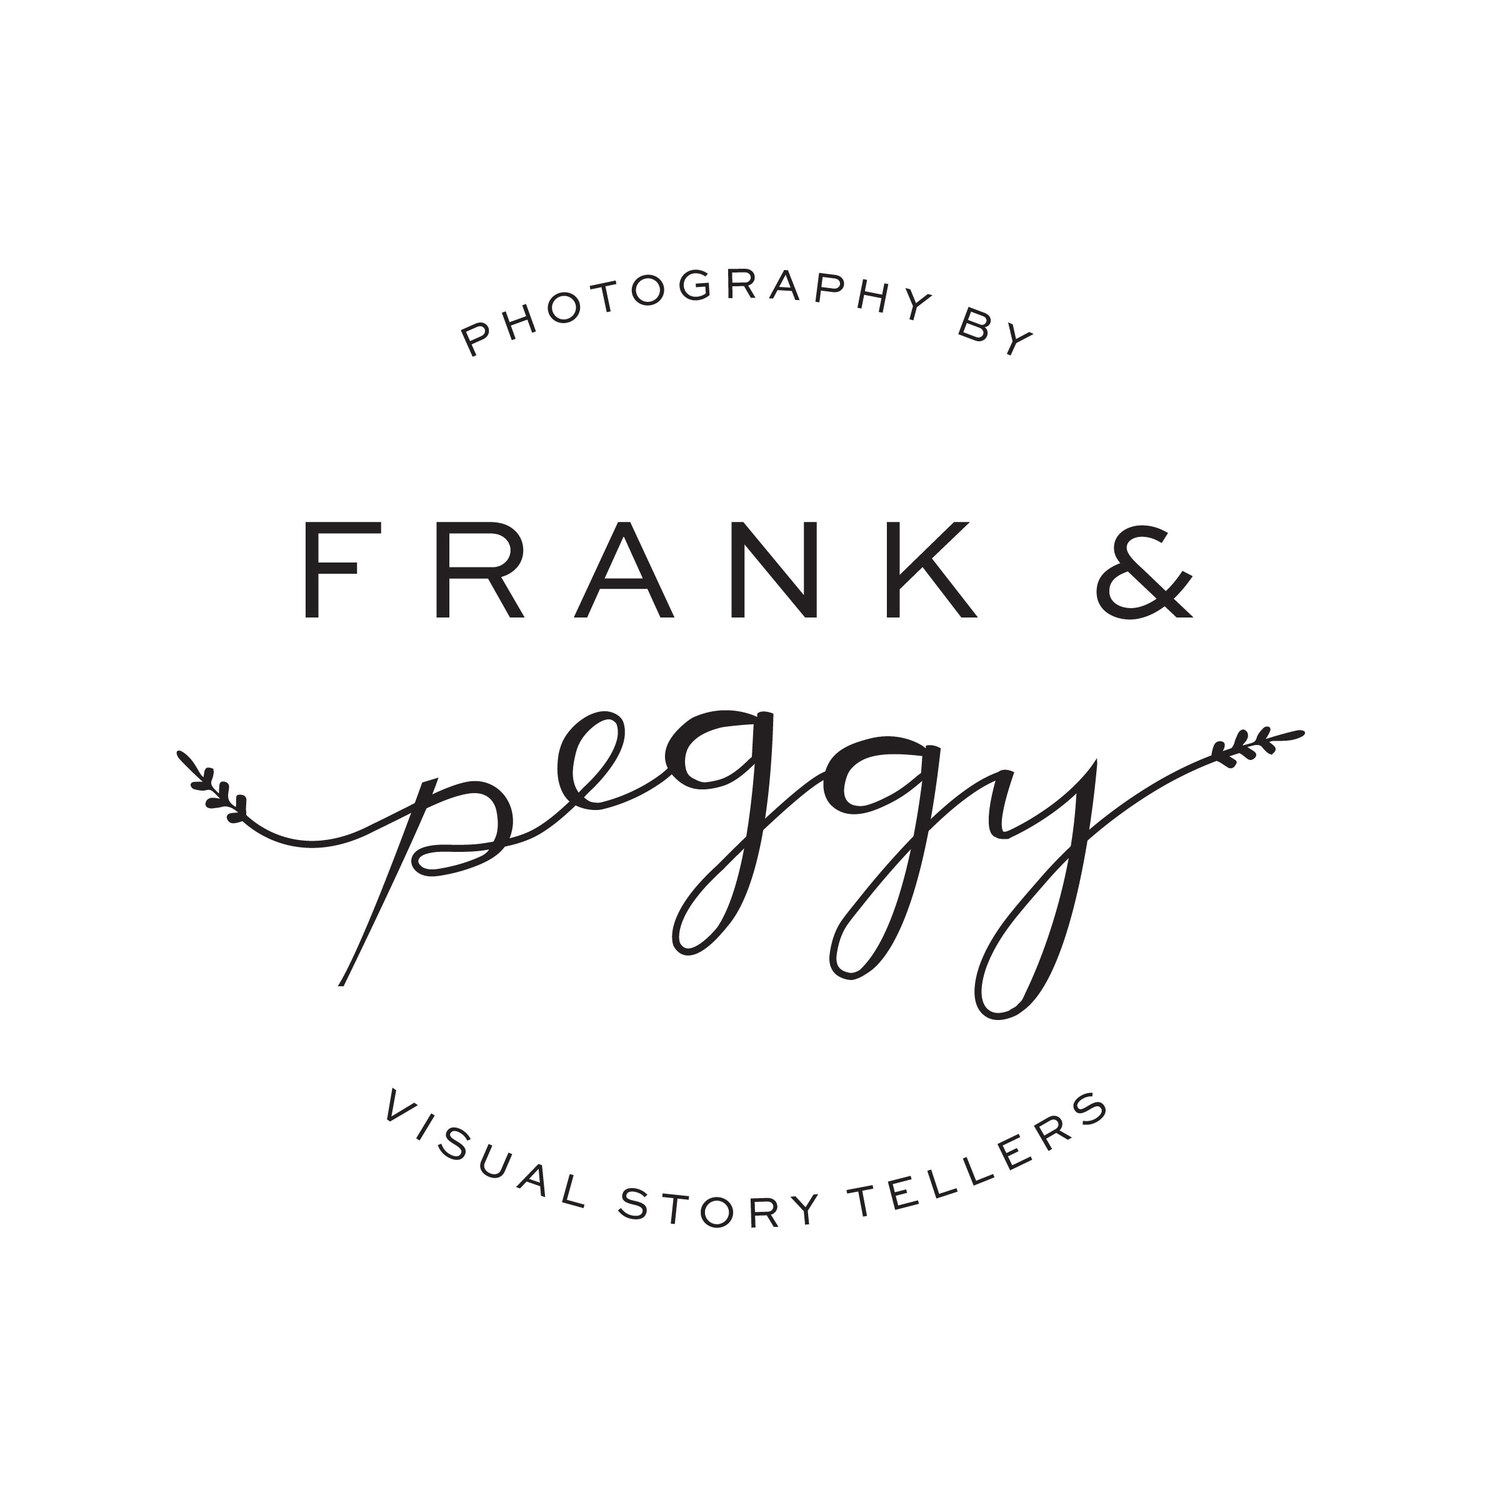 Photography By Frank and Peggy